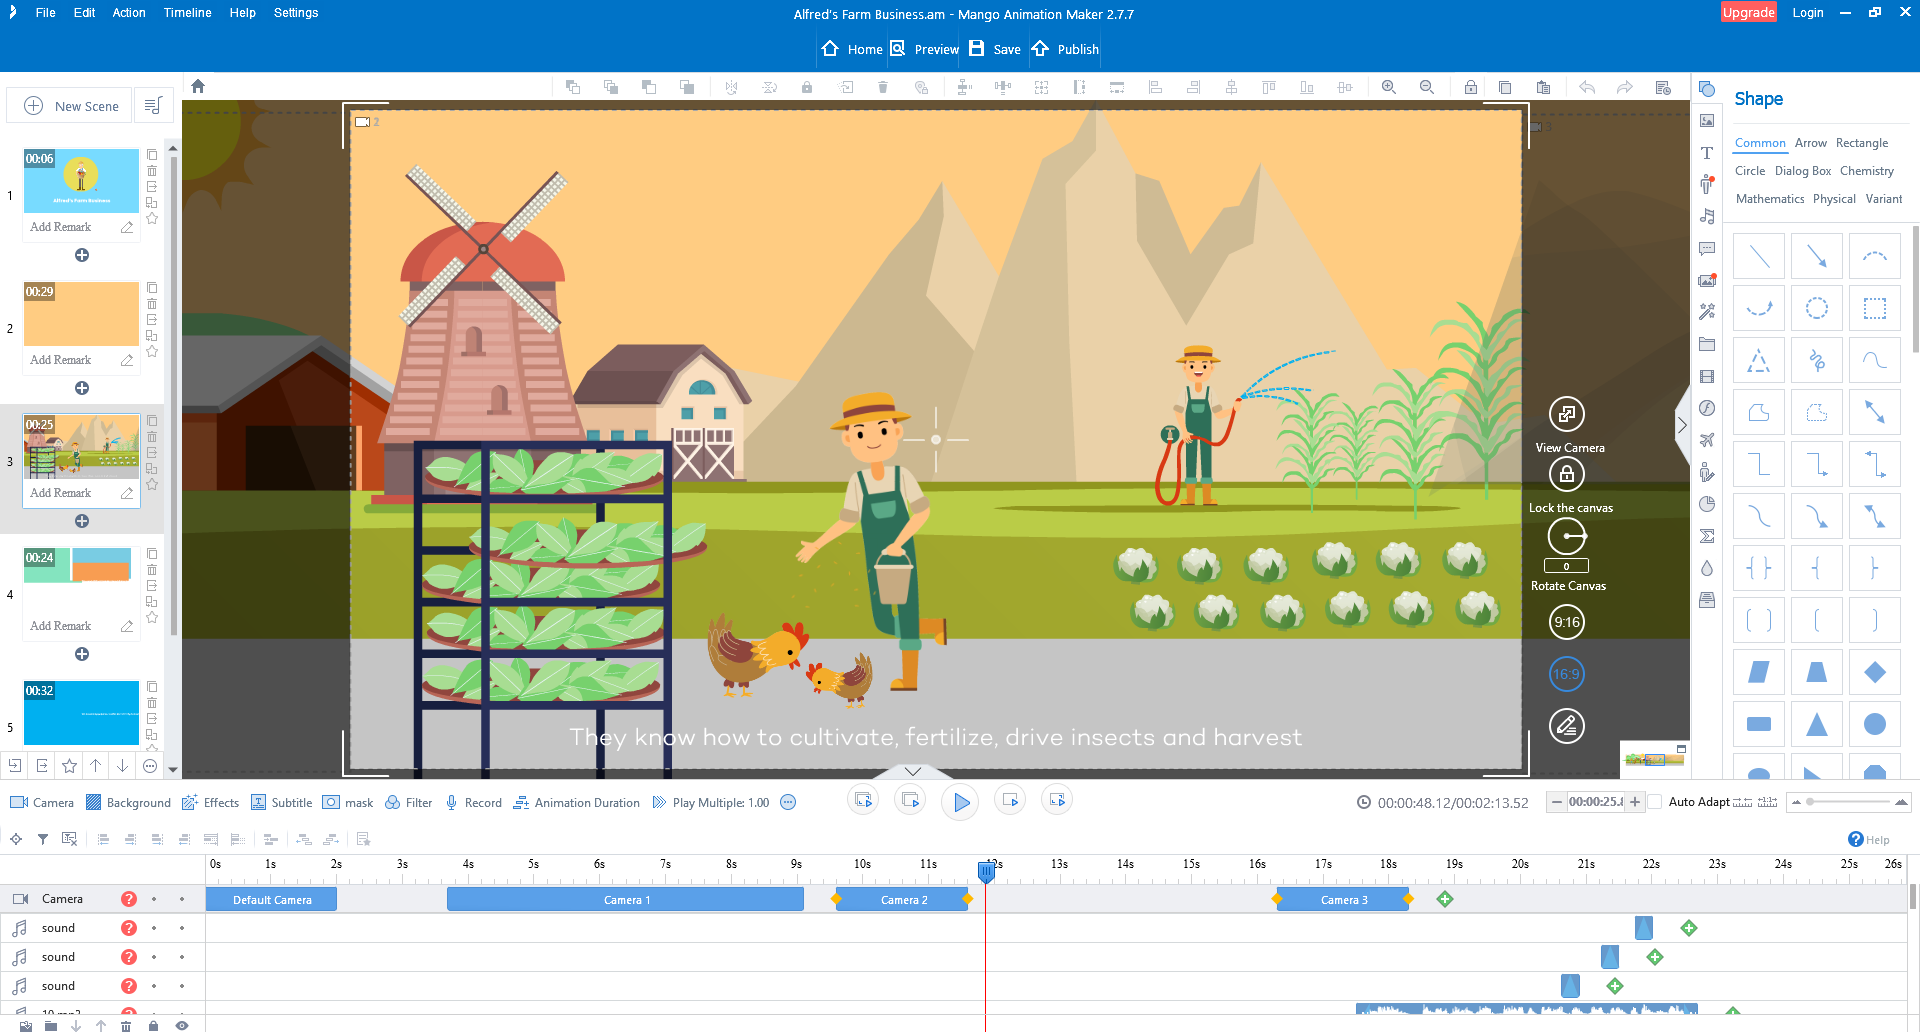 Mango Animate Animation Maker Lifetime, Video Editing Software Screenshot